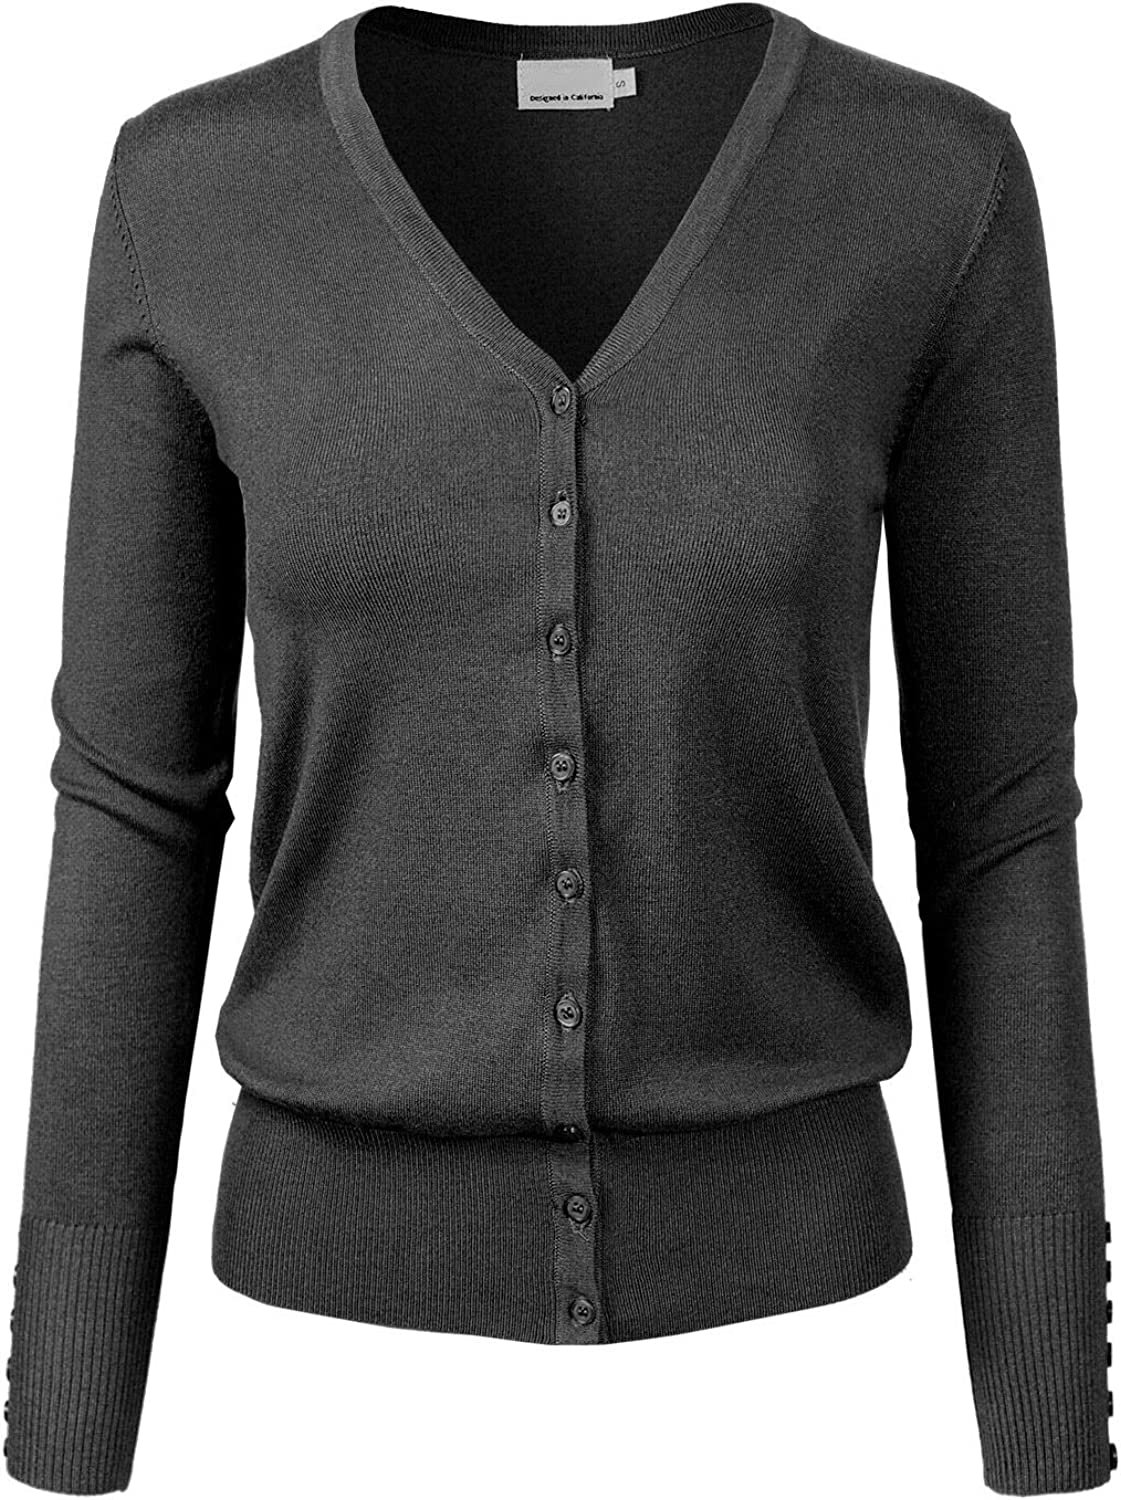 Design by Olivia Women's Classic Button Down Long Sleeve V-Neck Soft Knit Sweater Cardigan